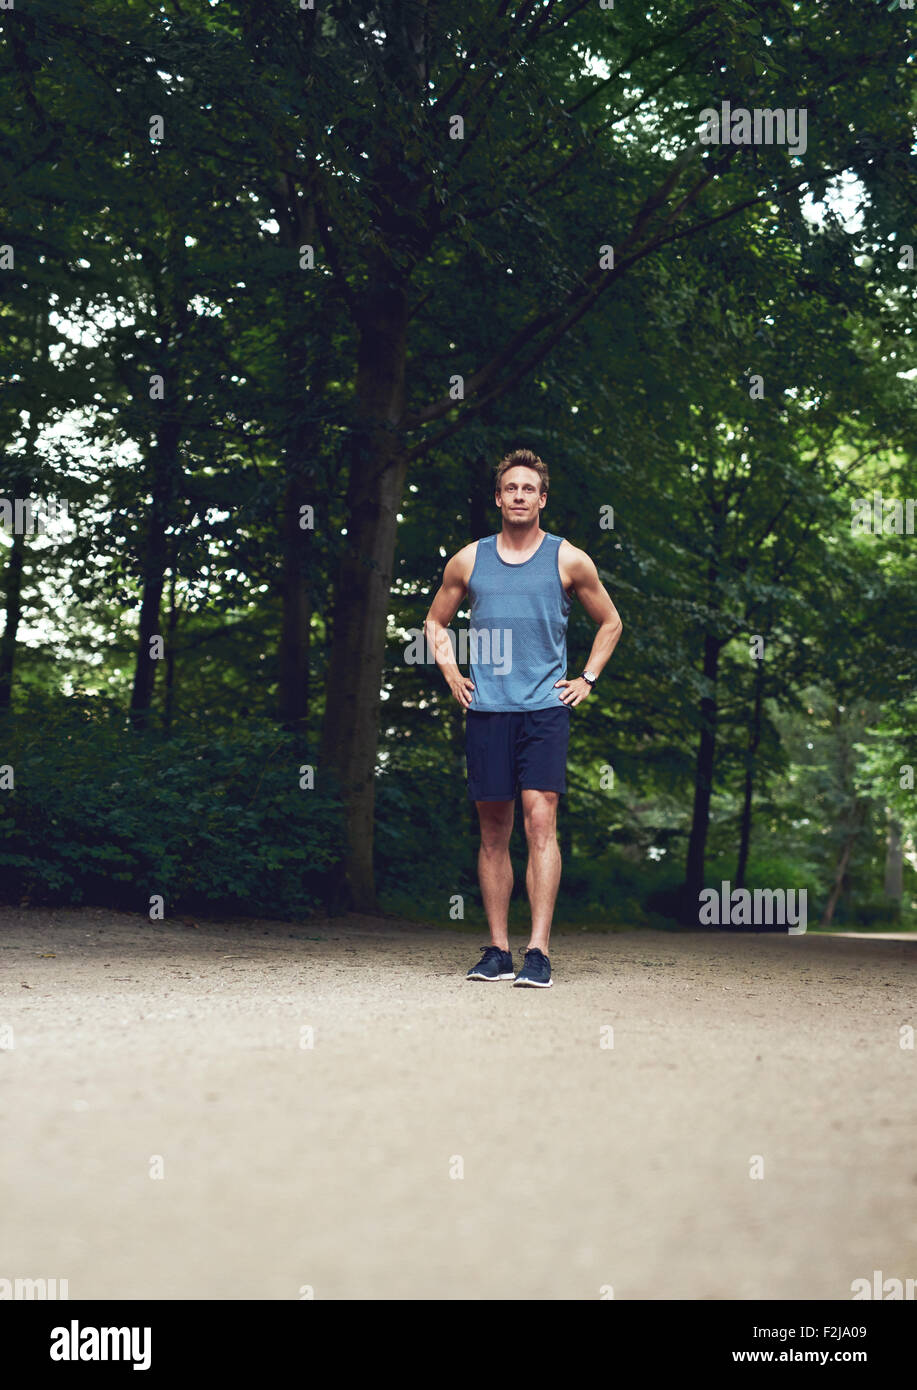 Athletic Young Man Standing at the Park with Hands Holding his Waist and Looking Into the Distance. - Stock Image